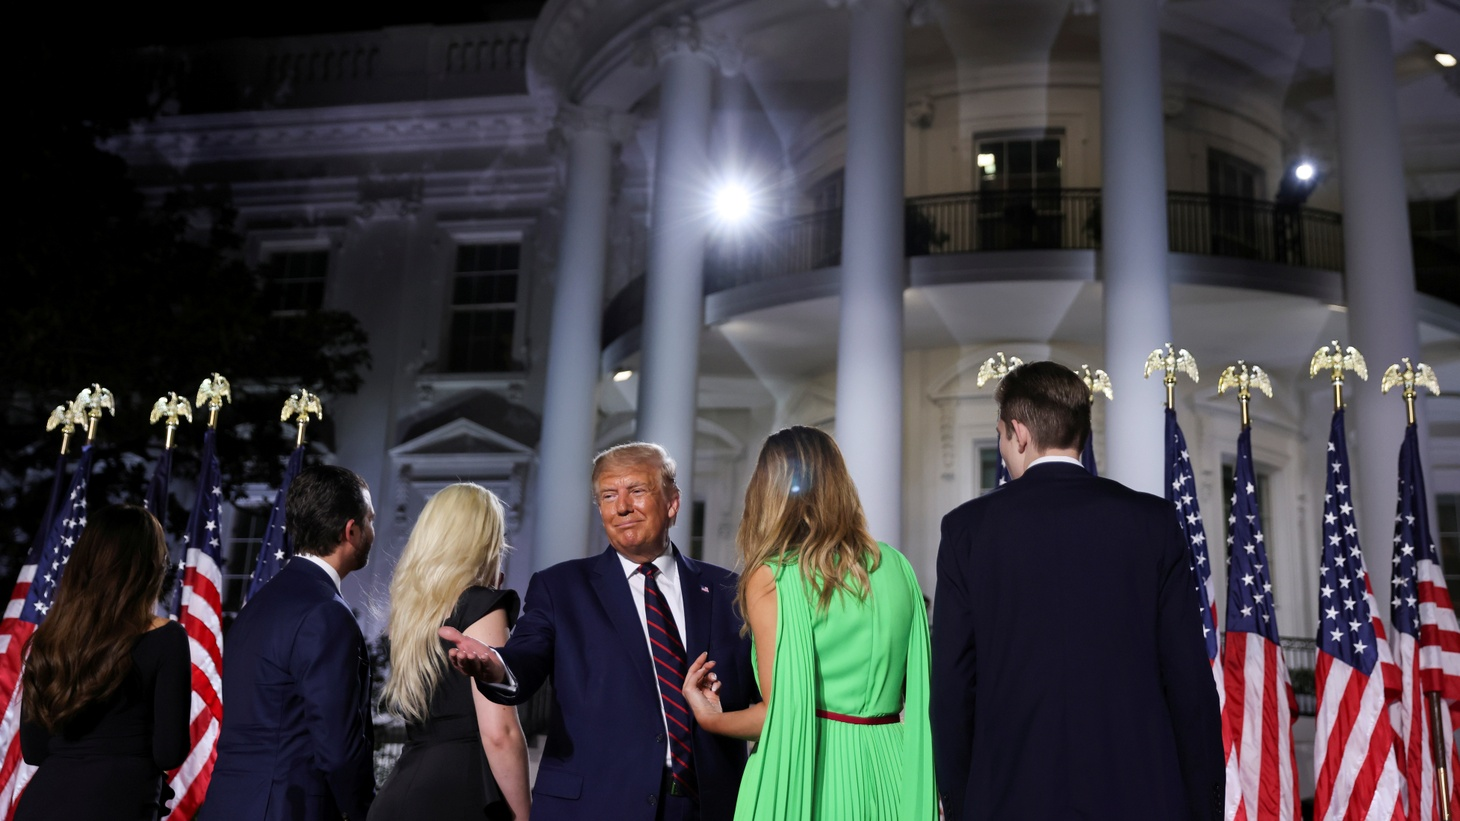 U.S. President Donald Trump gestures to the crowd as he stands with first lady Melania Trump, his son Barron and the rest of his extended family after delivering his acceptance speech as the 2020 Republican presidential nominee during the final event of the Republican National Convention on the South Lawn of the White House in Washington, U.S., August 27, 2020.